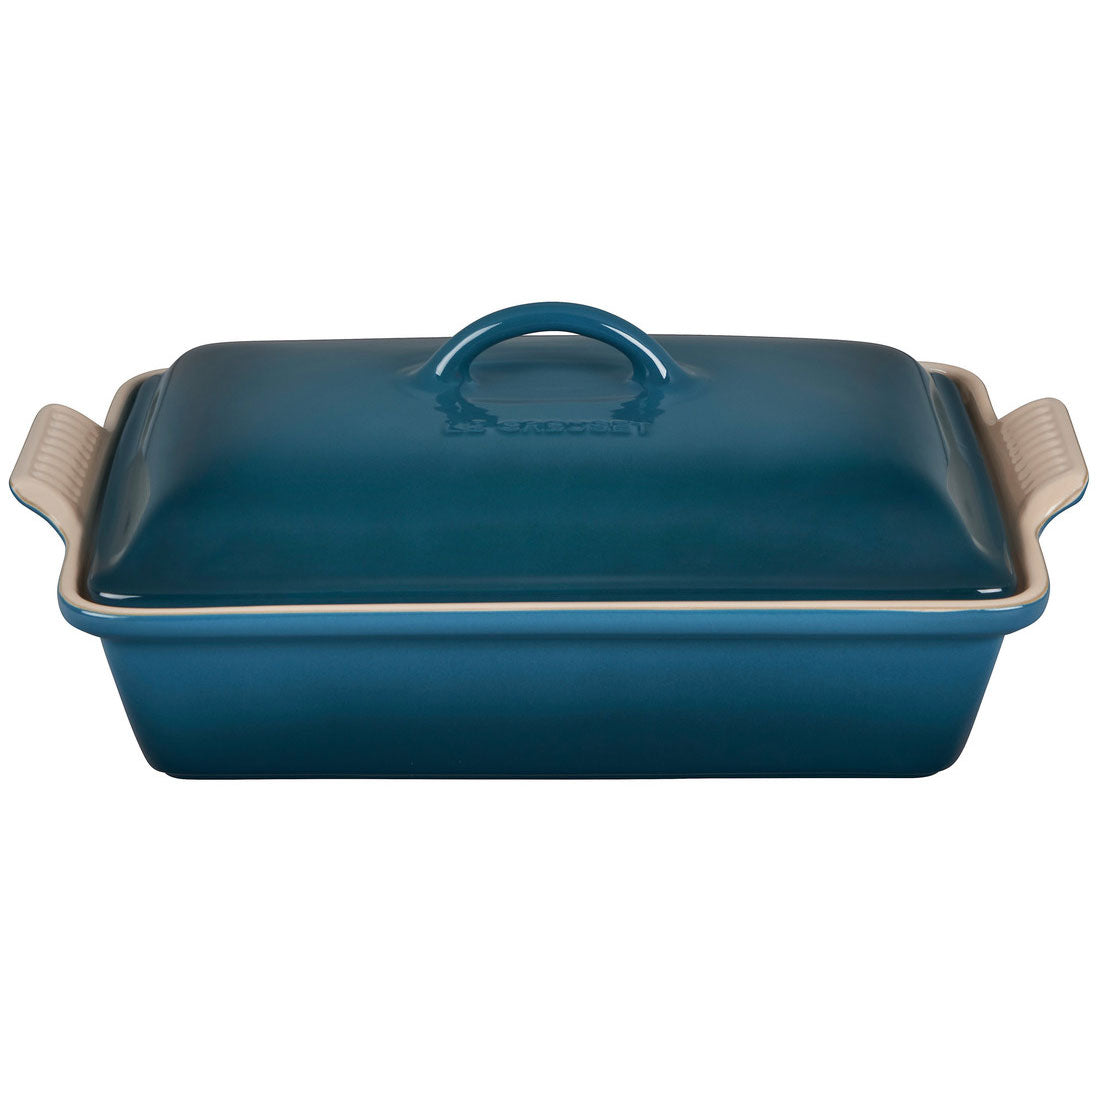 Le Creuset 4 Quart Heritage Covered Rectangular Stoneware Casserole - Deep Teal